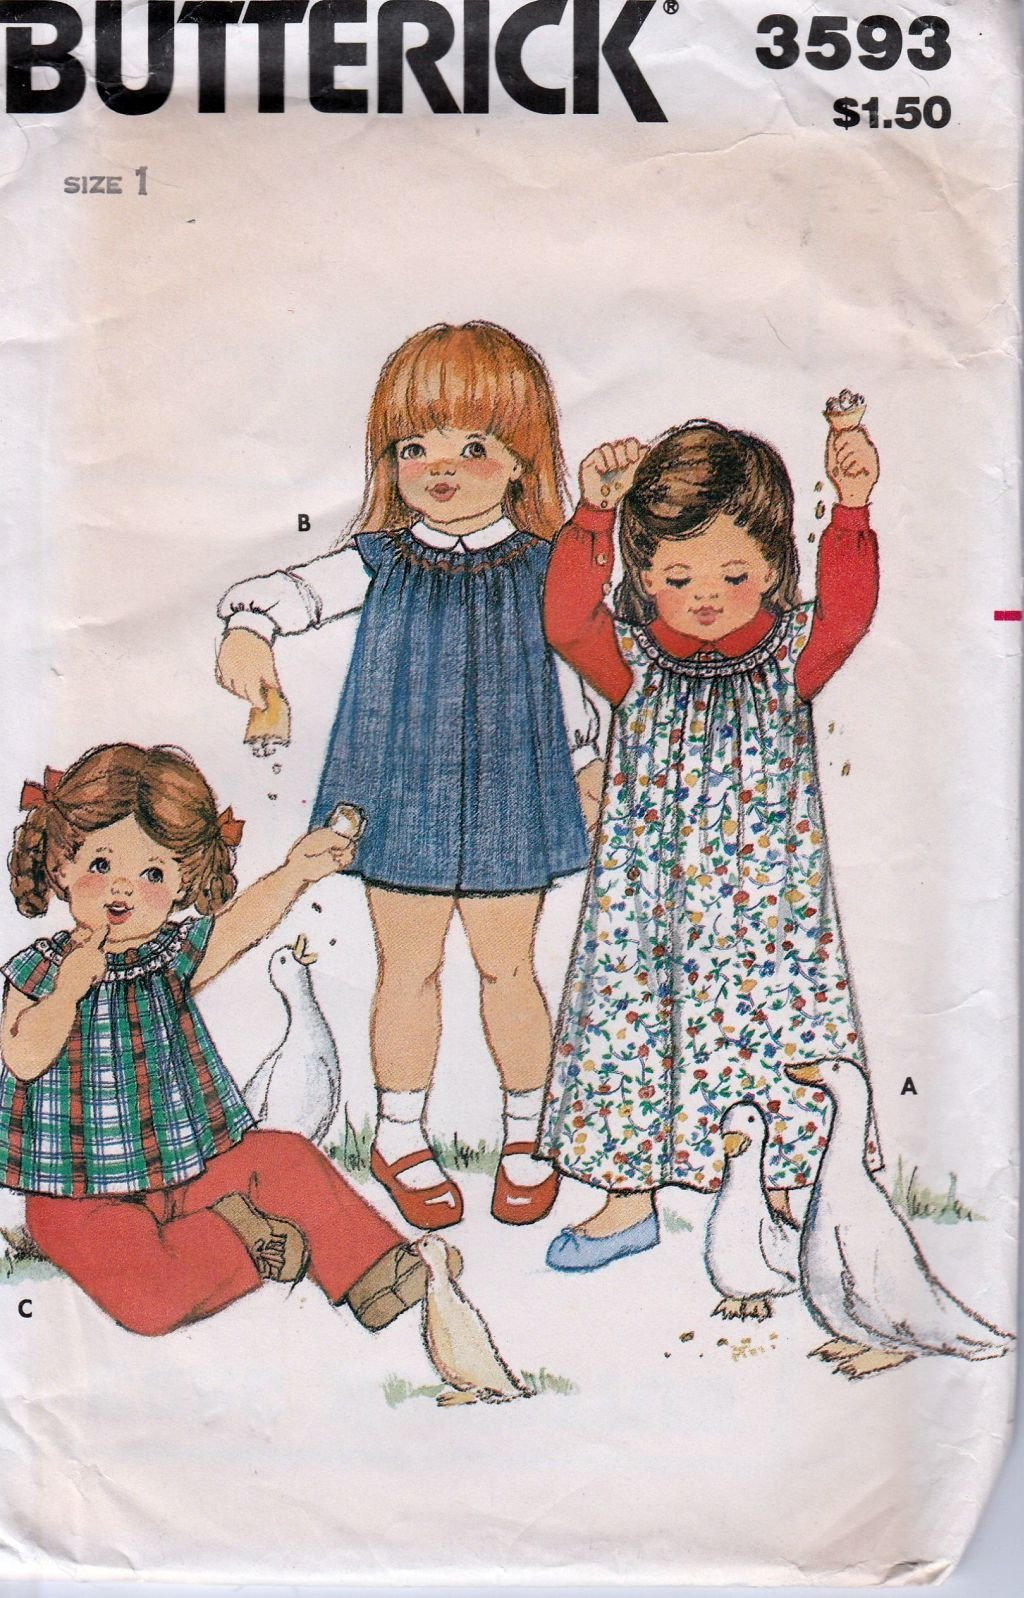 Butterick 3593 Vintage 80's Sewing Pattern Toddlers Dress Top - VintageStitching - Vintage Sewing Patterns